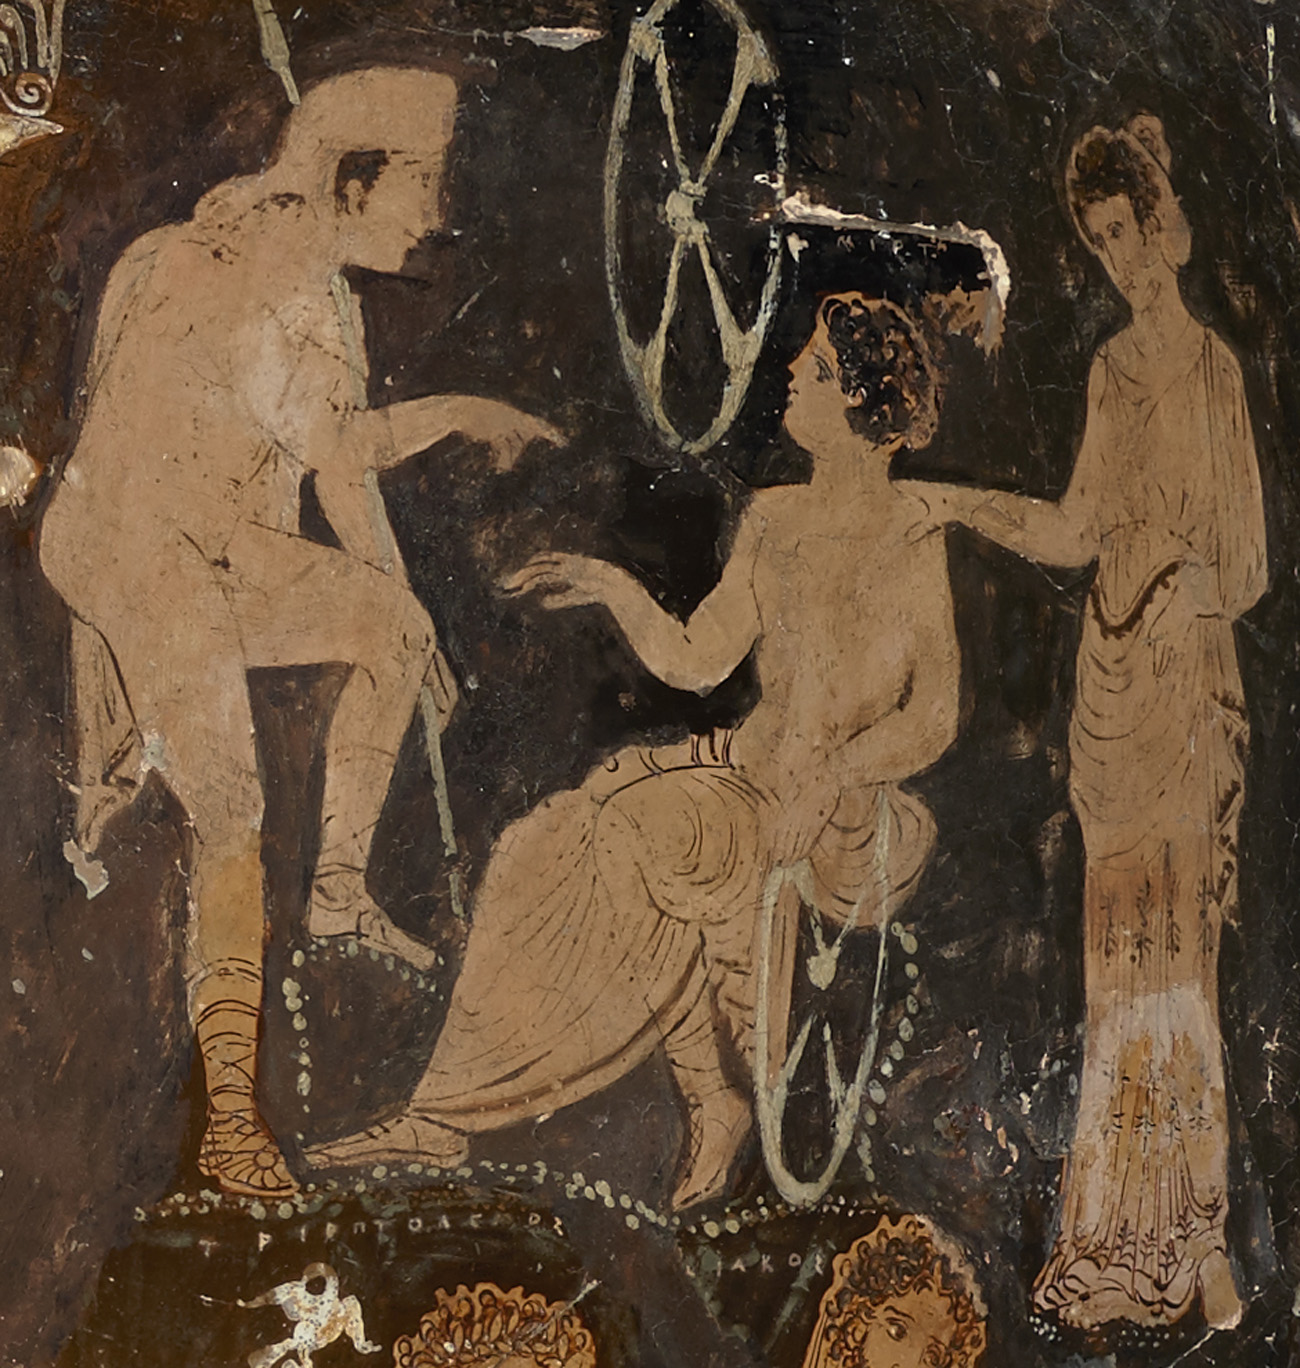 Pelops, Myrtilos, and Hippodamaia